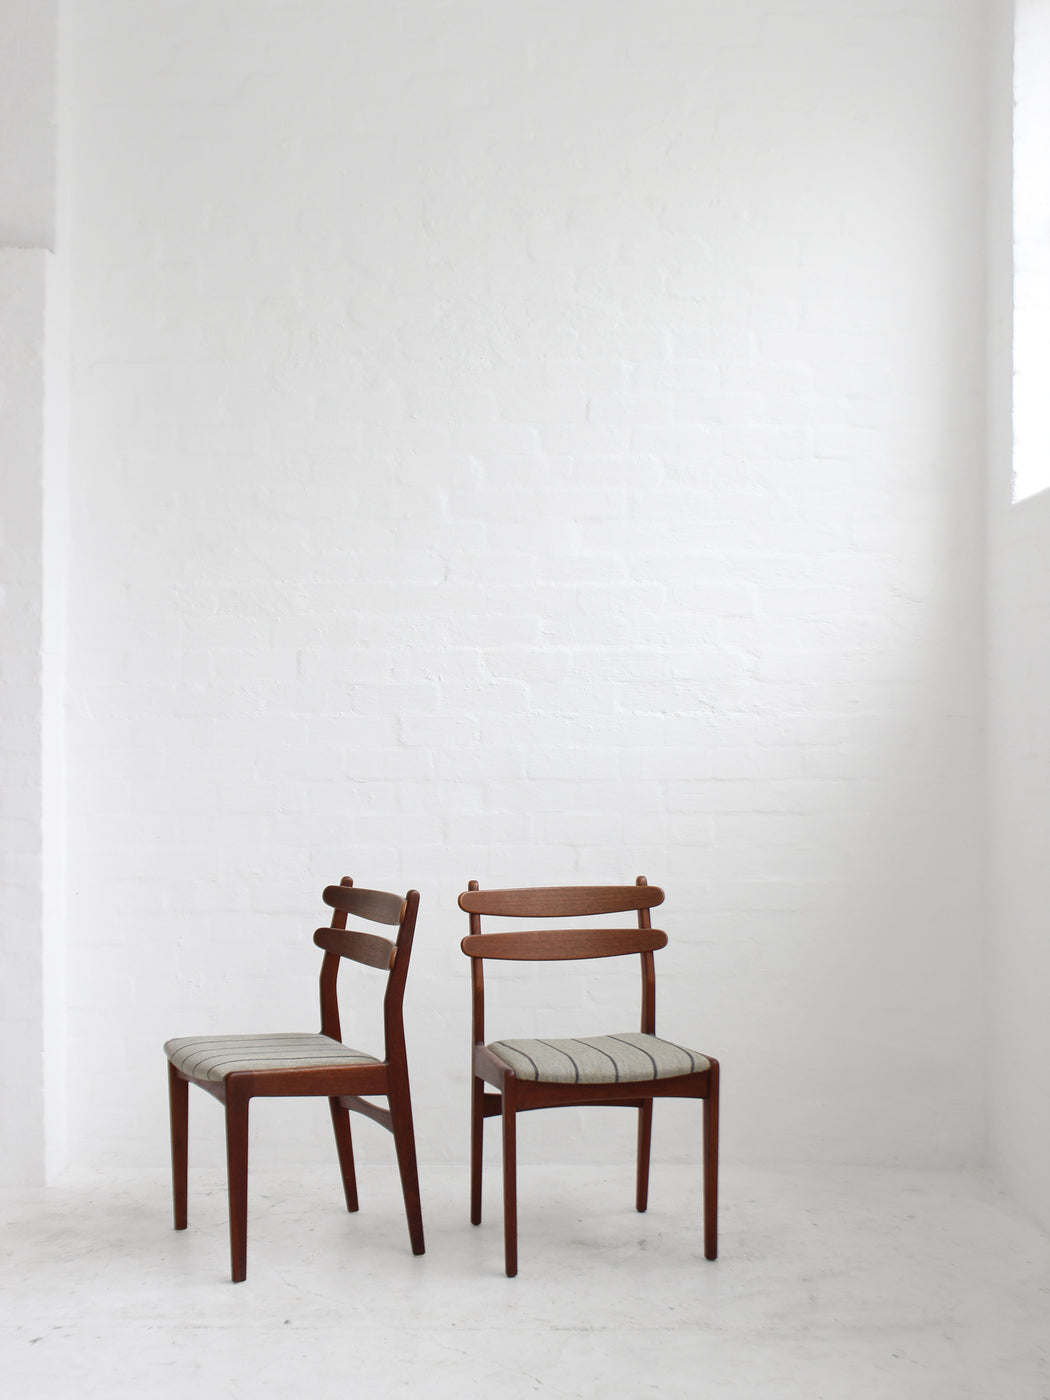 Kurt Olsen 'Ladderback' Chairs